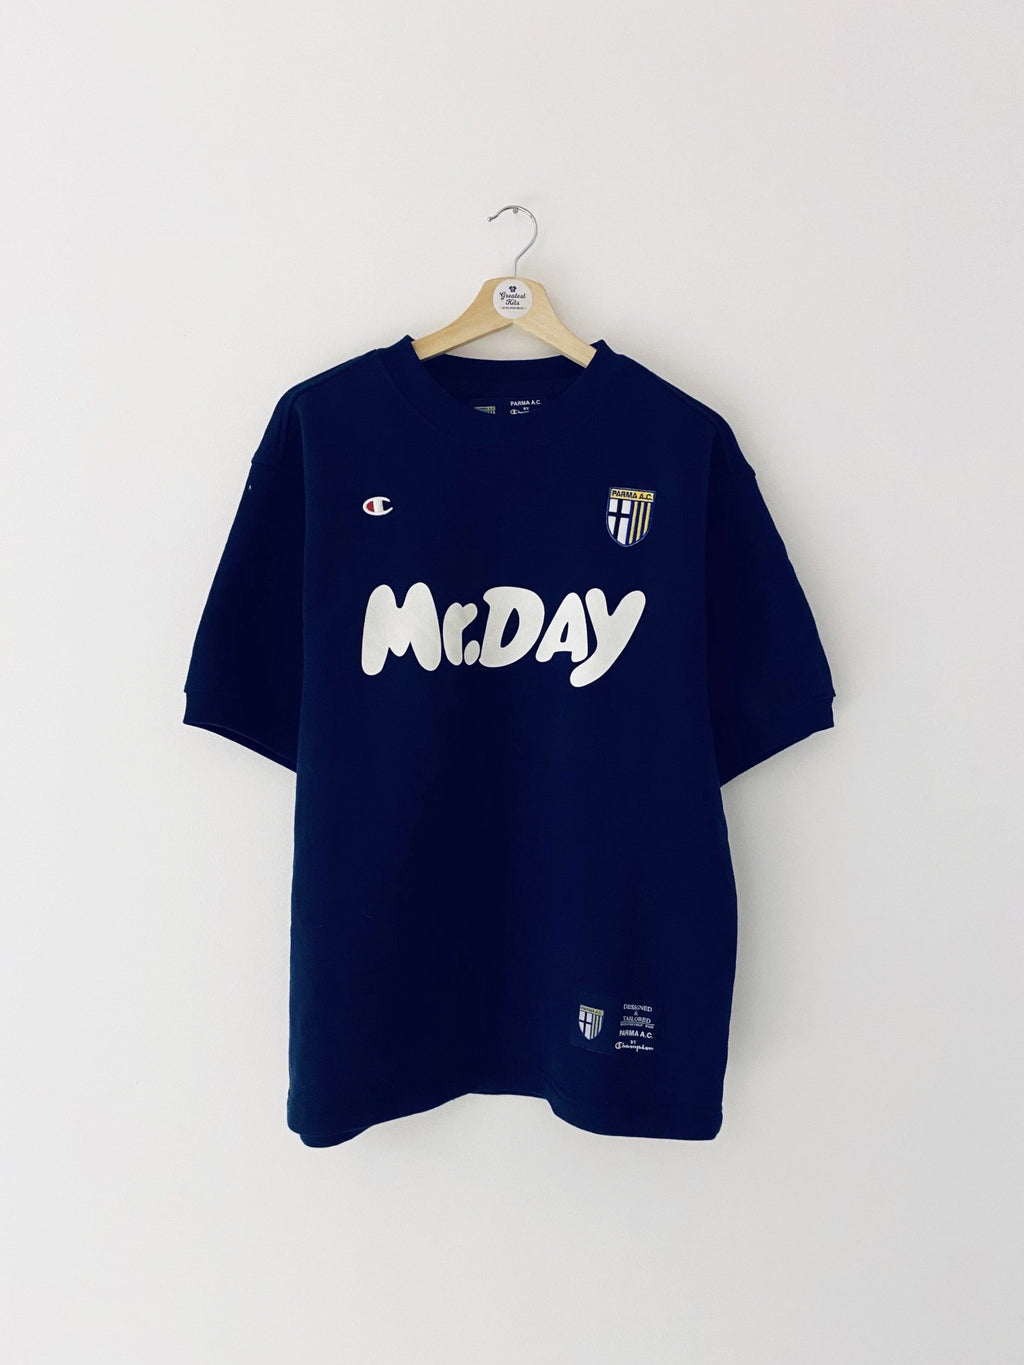 2000/01 Parma S/S Training Jumper (M) 9/10